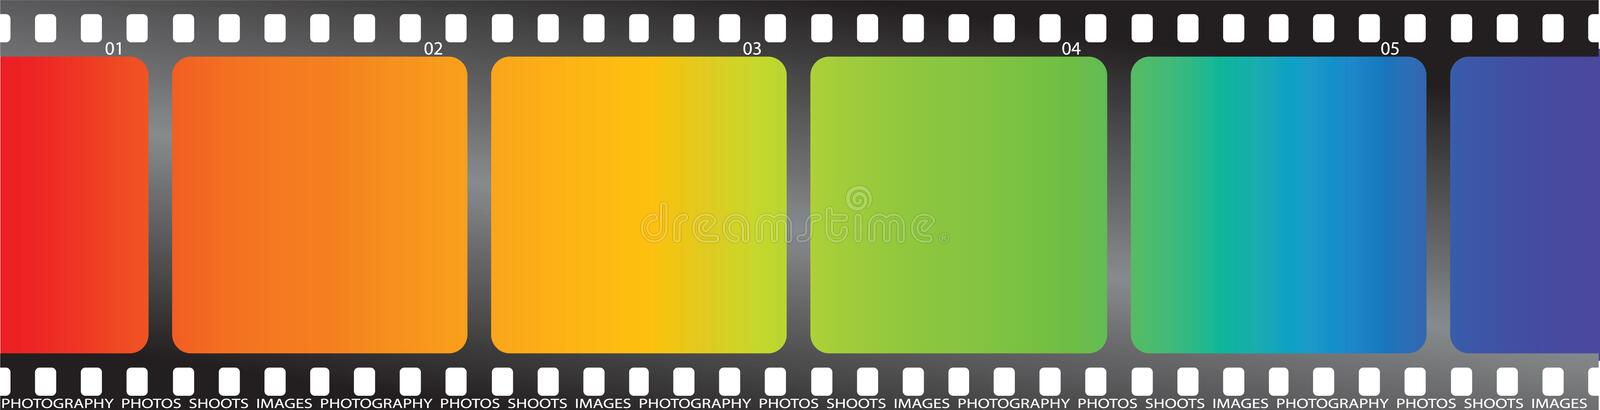 Rainbow film. A single piece of film with a rainbow effect on it royalty free illustration